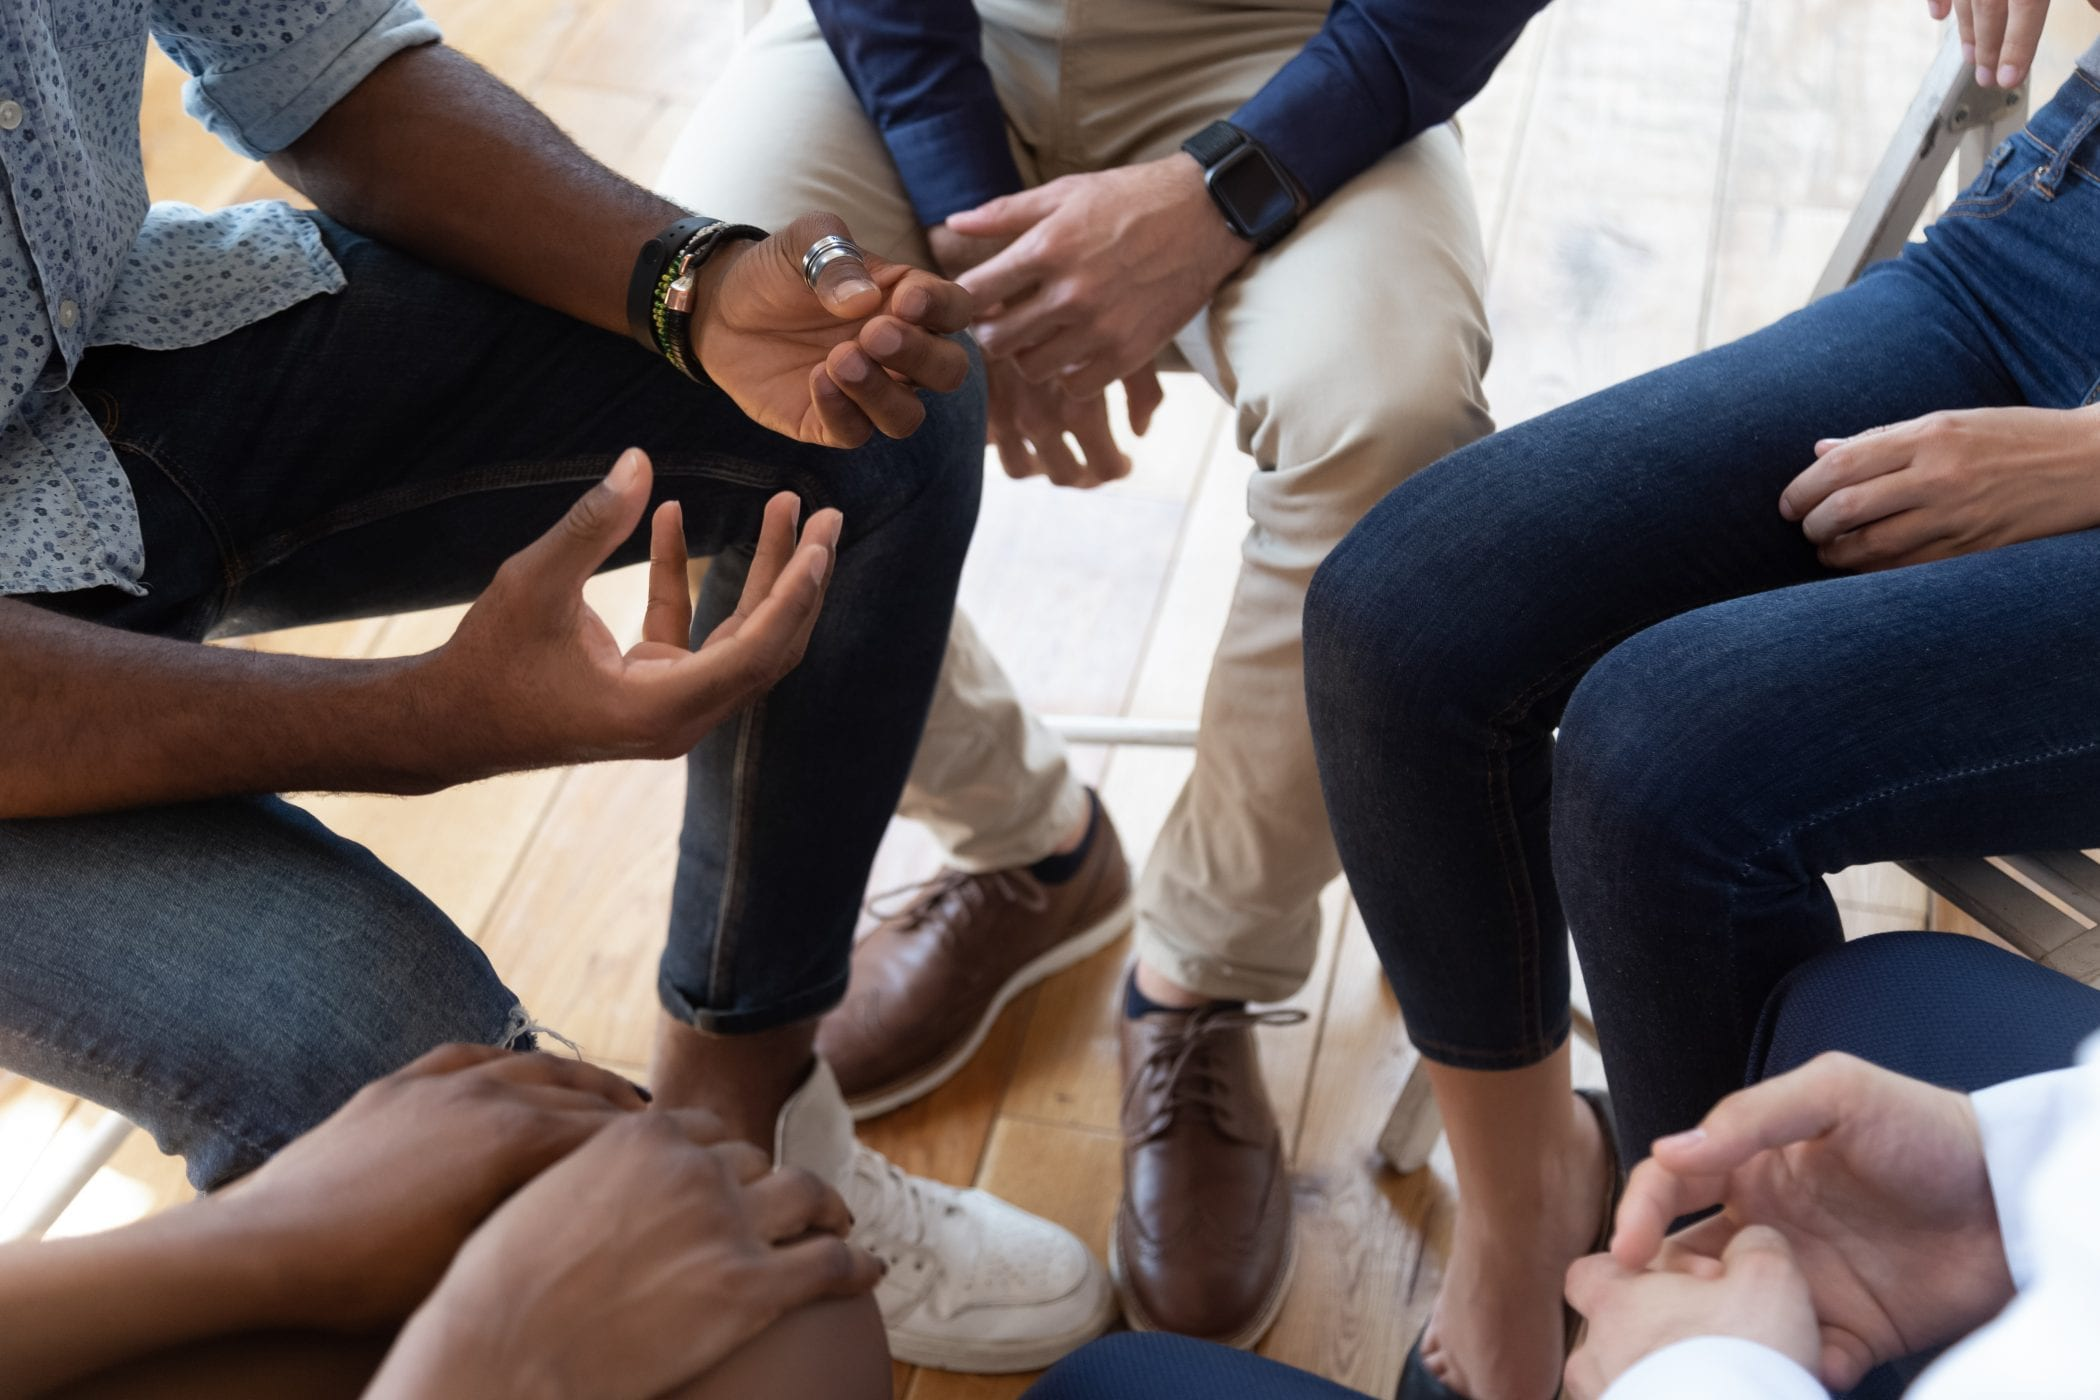 People sitting in circle share problems during psychological rehab session